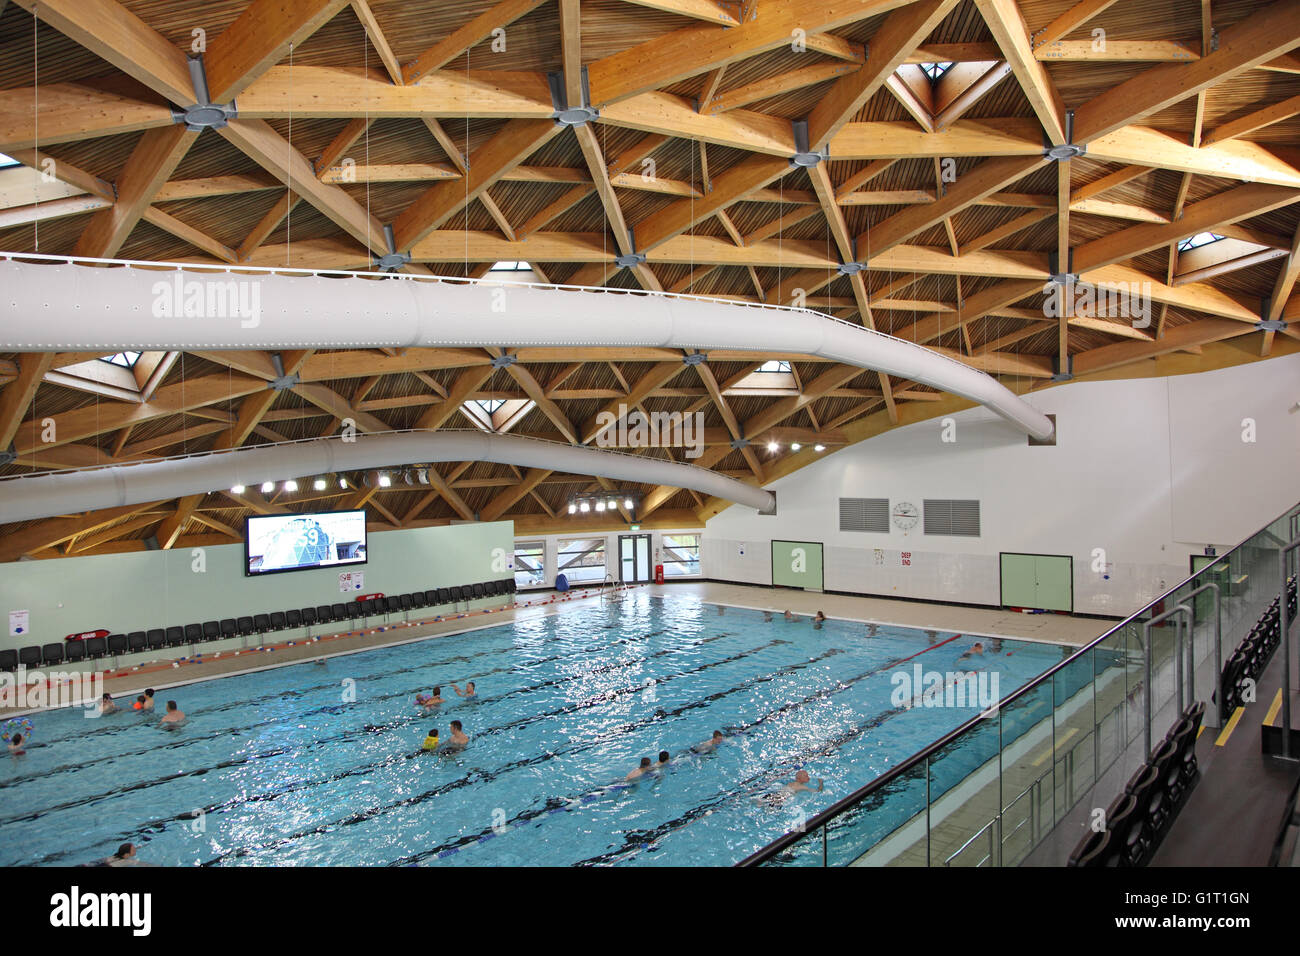 Interior Of The Swimming Pool Hall At The Pods Leisure Centre Stock Photo Royalty Free Image